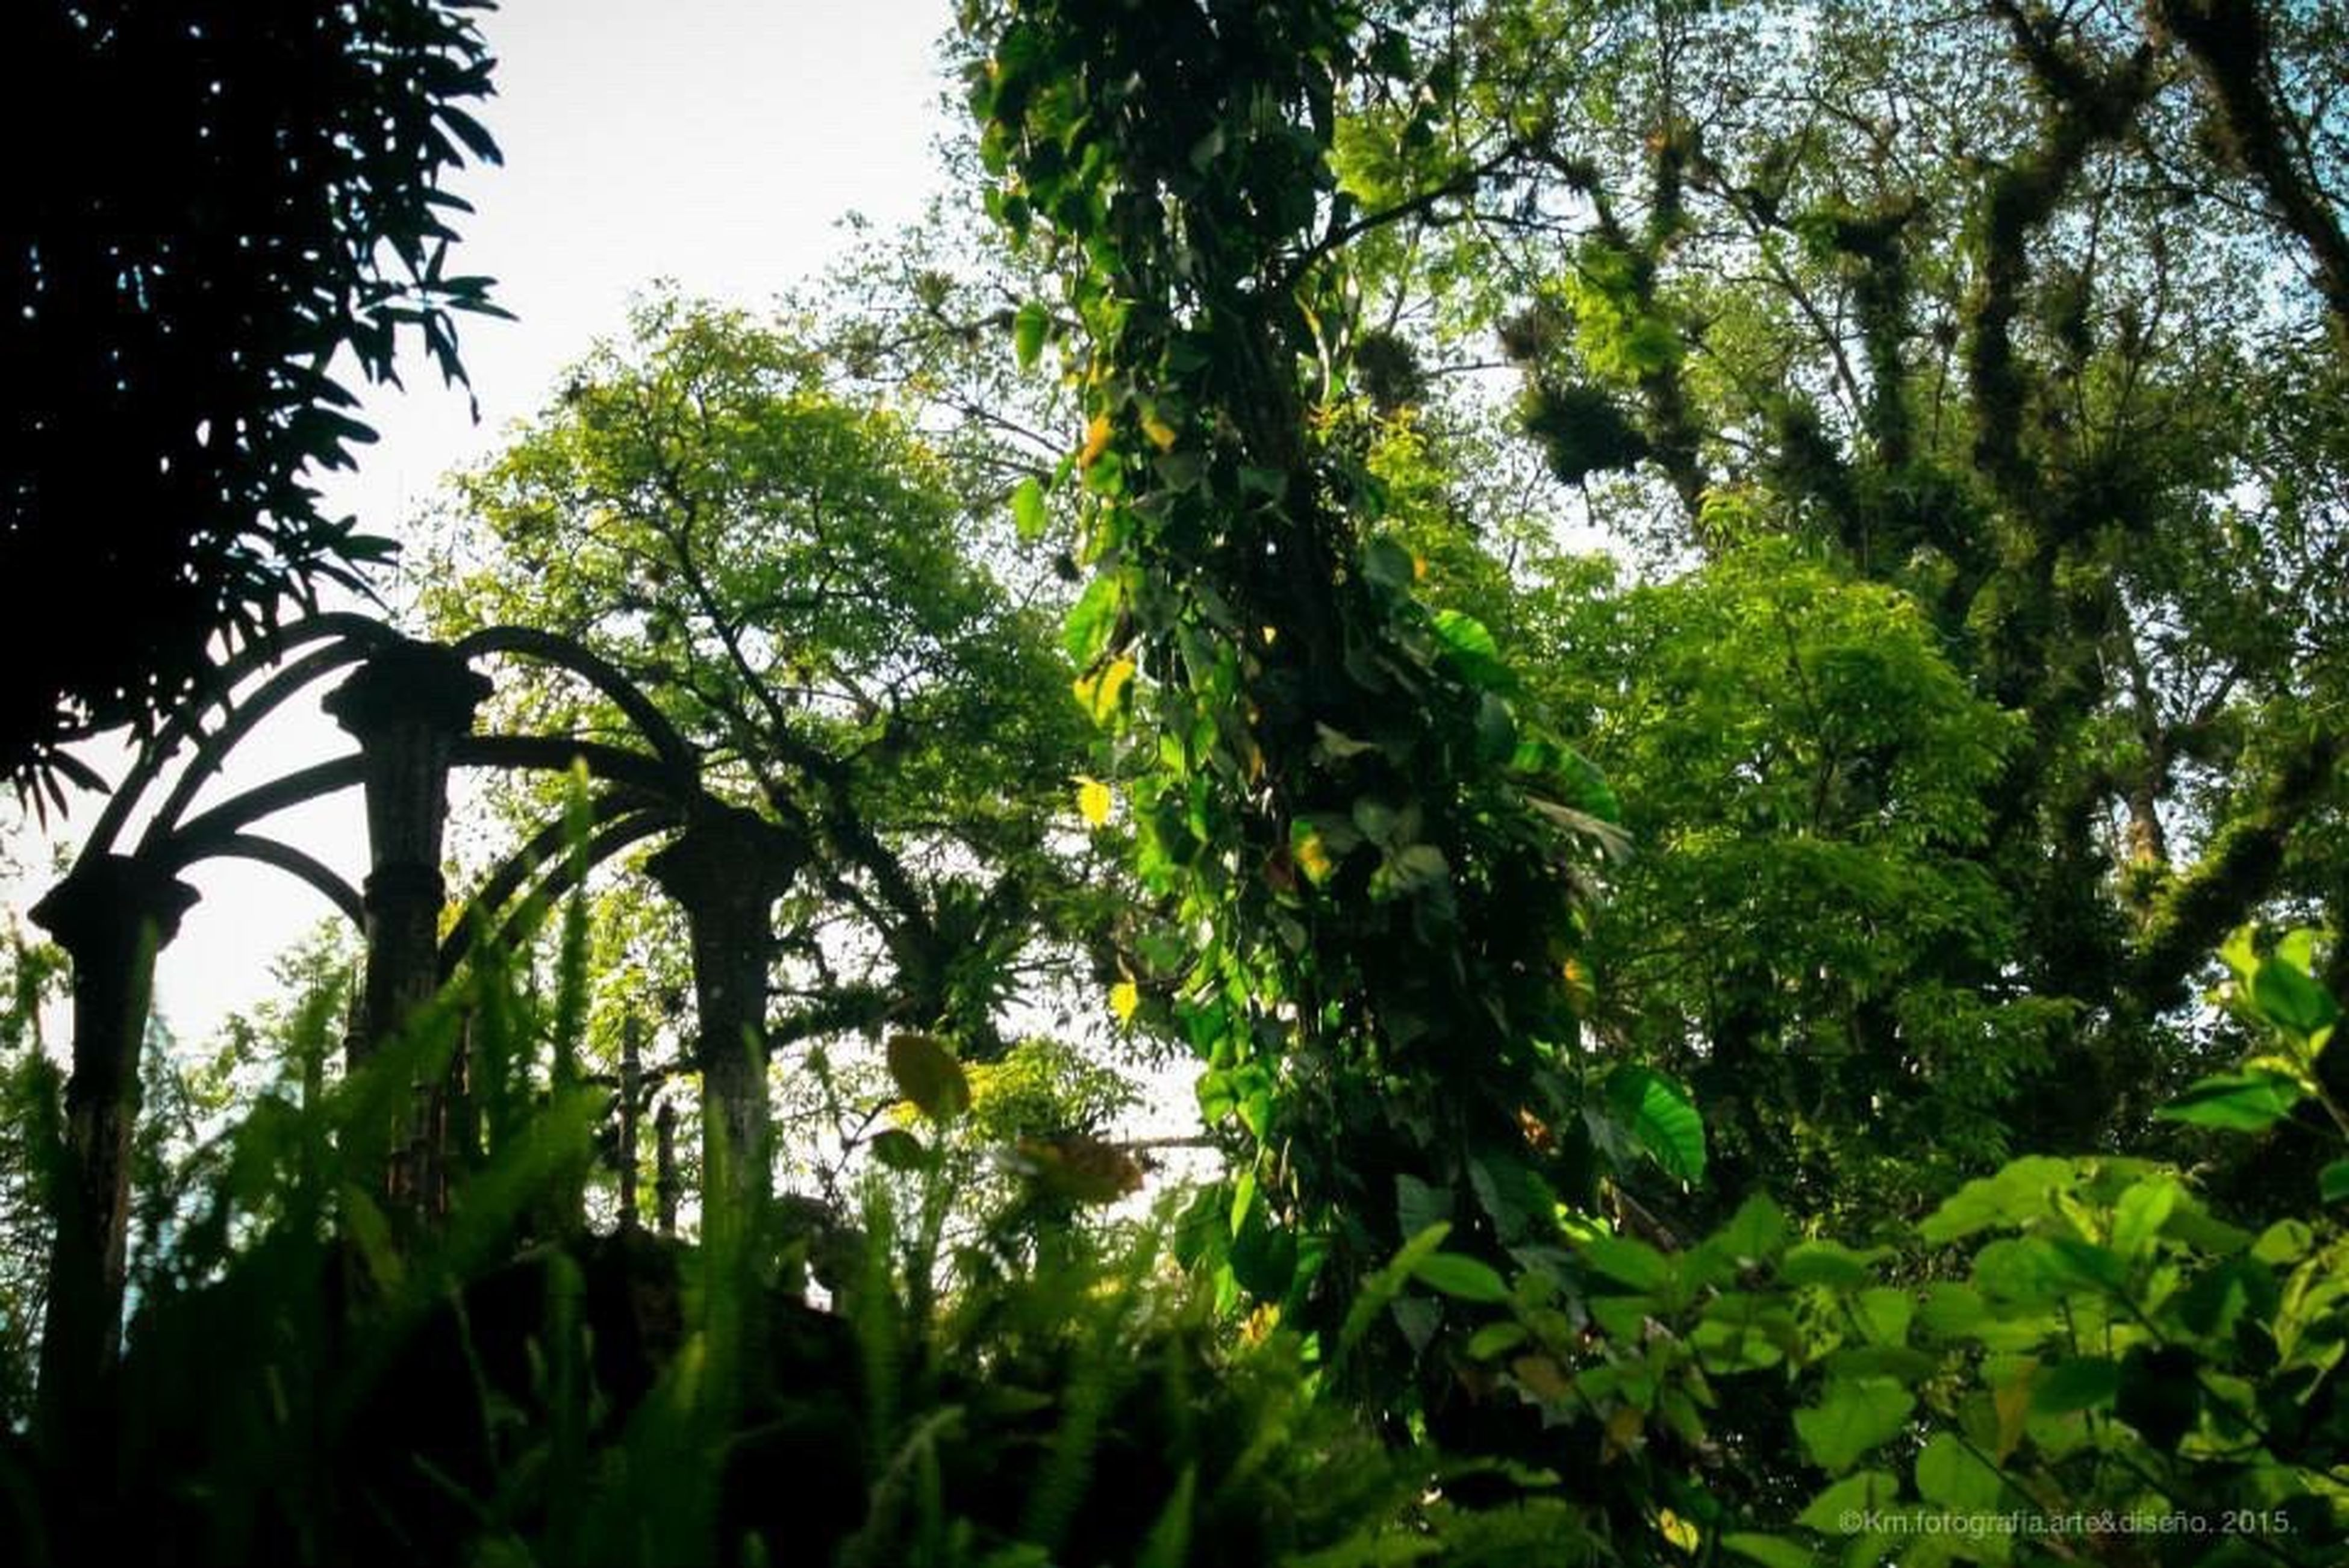 tree, growth, green color, nature, plant, low angle view, clear sky, branch, tranquility, leaf, beauty in nature, lush foliage, outdoors, day, no people, green, growing, sunlight, forest, fence